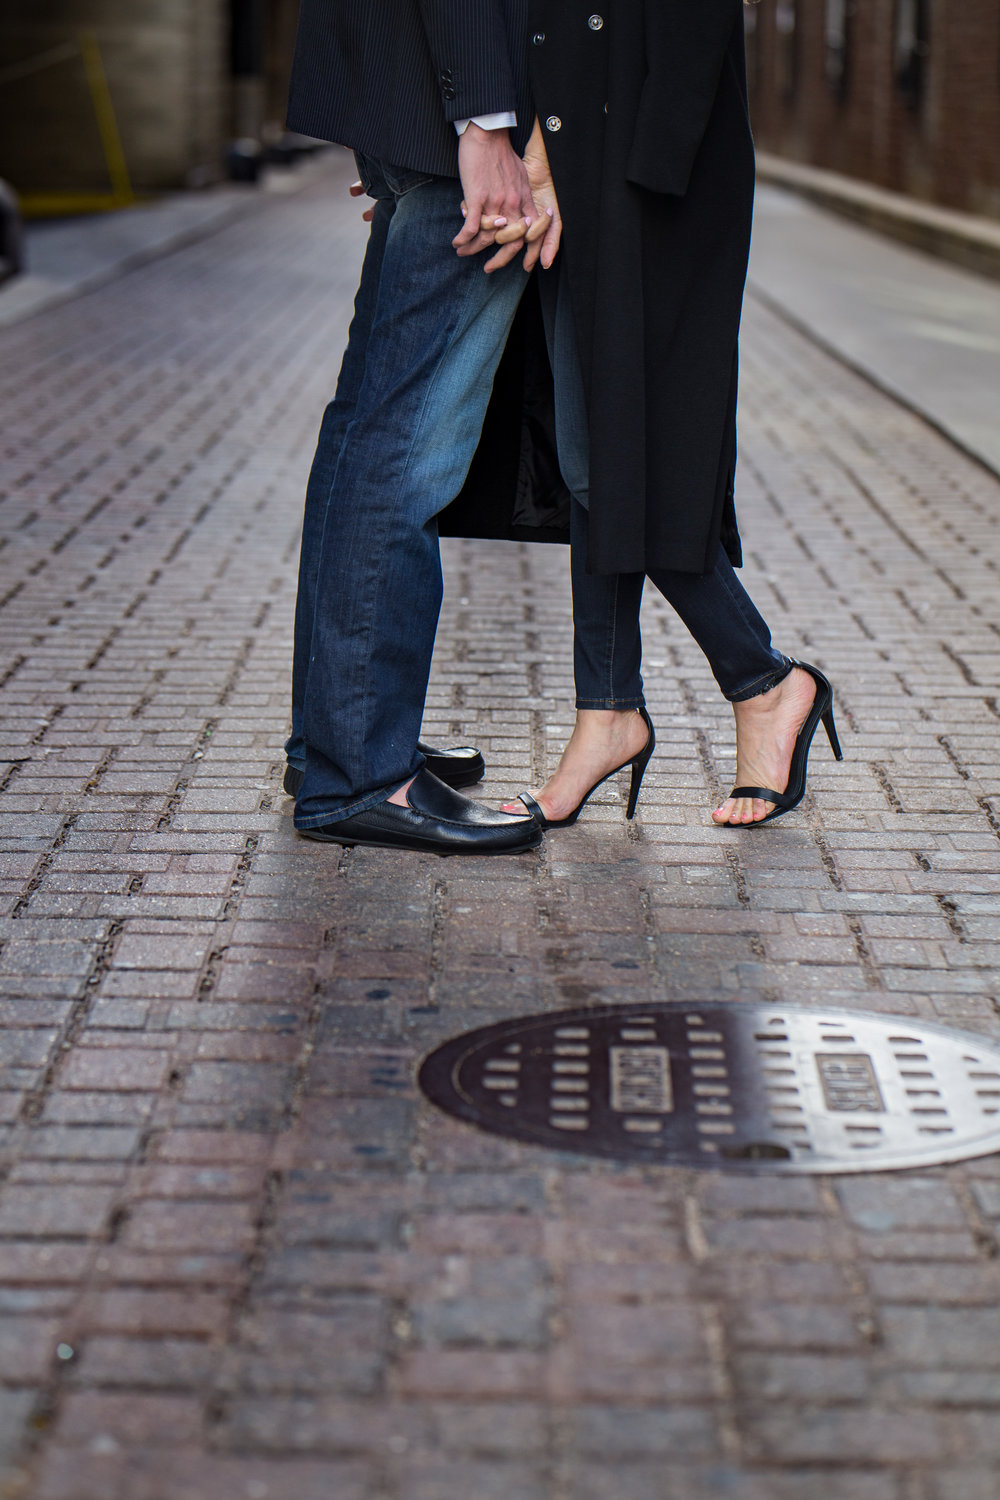 CHICAGO MODERN ENGAGEMENT PHOTOGRAPHY